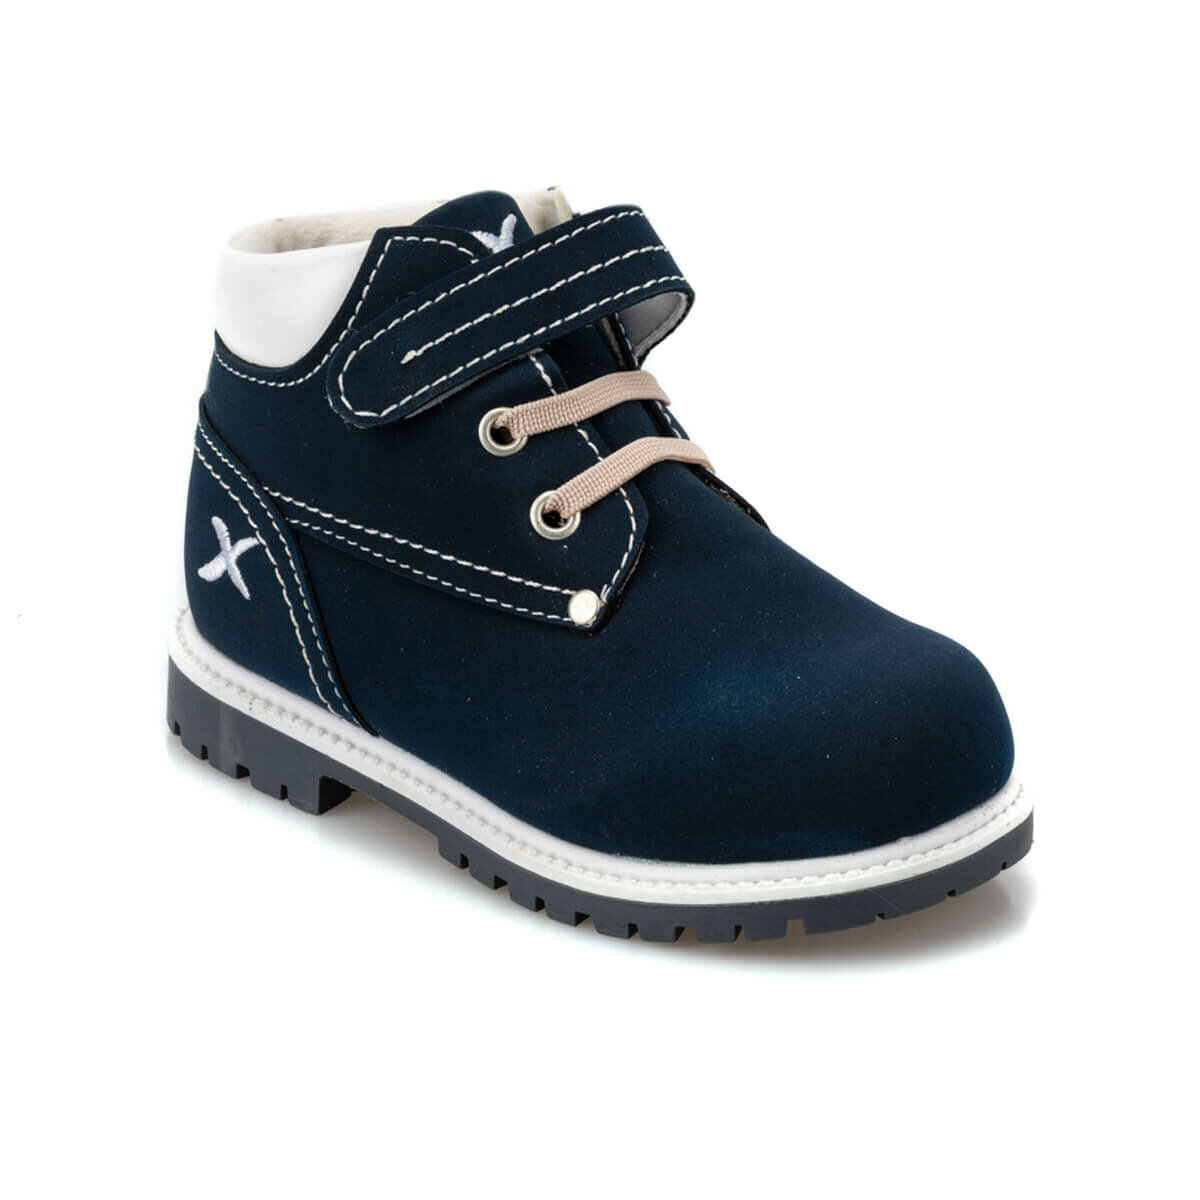 FLO MOIRA 9PR Navy Blue Male Child Boots KINETIX